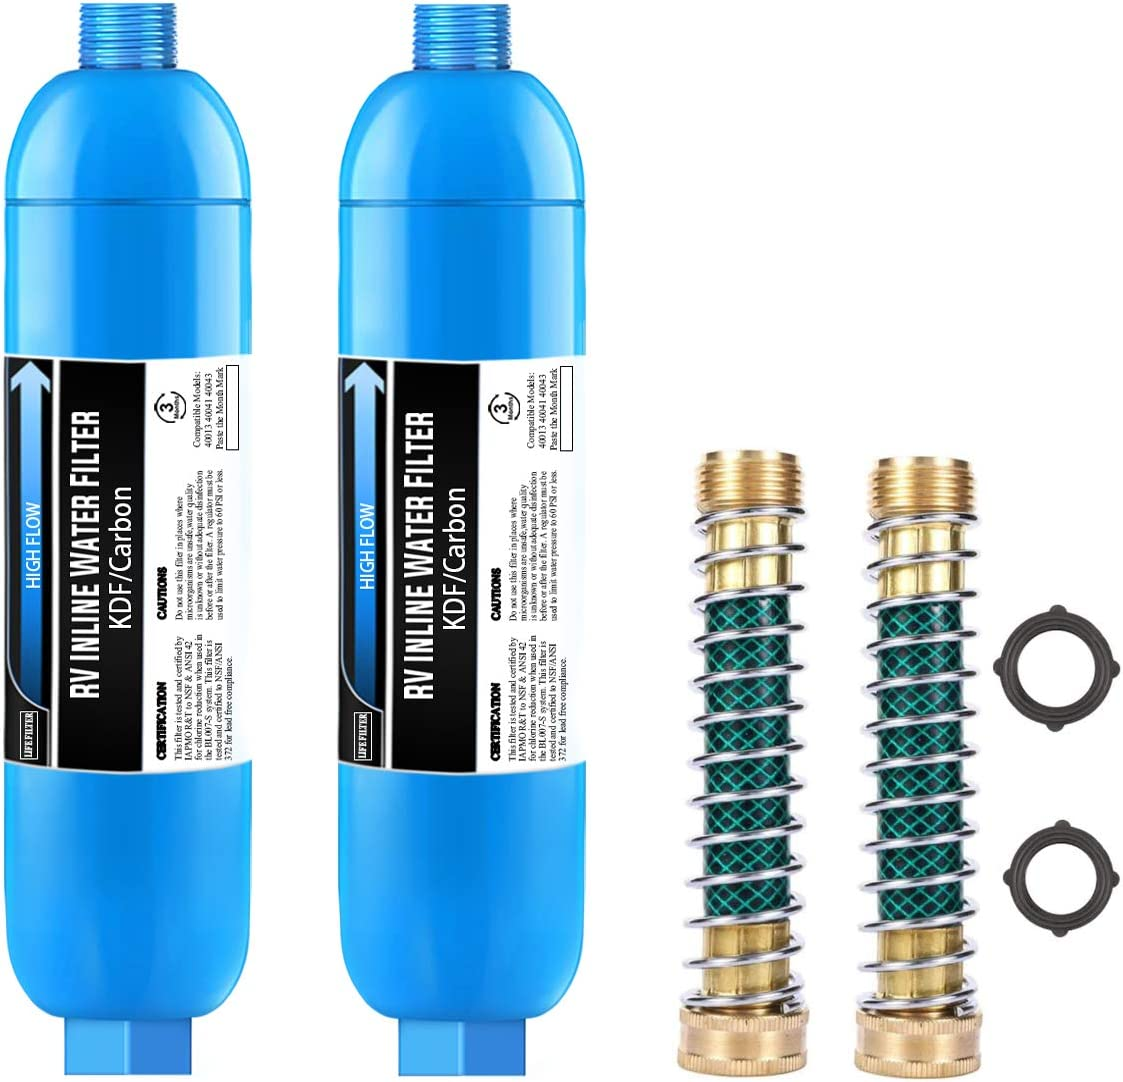 Lifefilter RV Inline Water Filter with Flexible Hose Protector,Reduces Lead, Fluoride, Chlorine, Bad Taste&Odor,Compatible with 40013, 40041, 40043 KDF Filter, 2 Pack